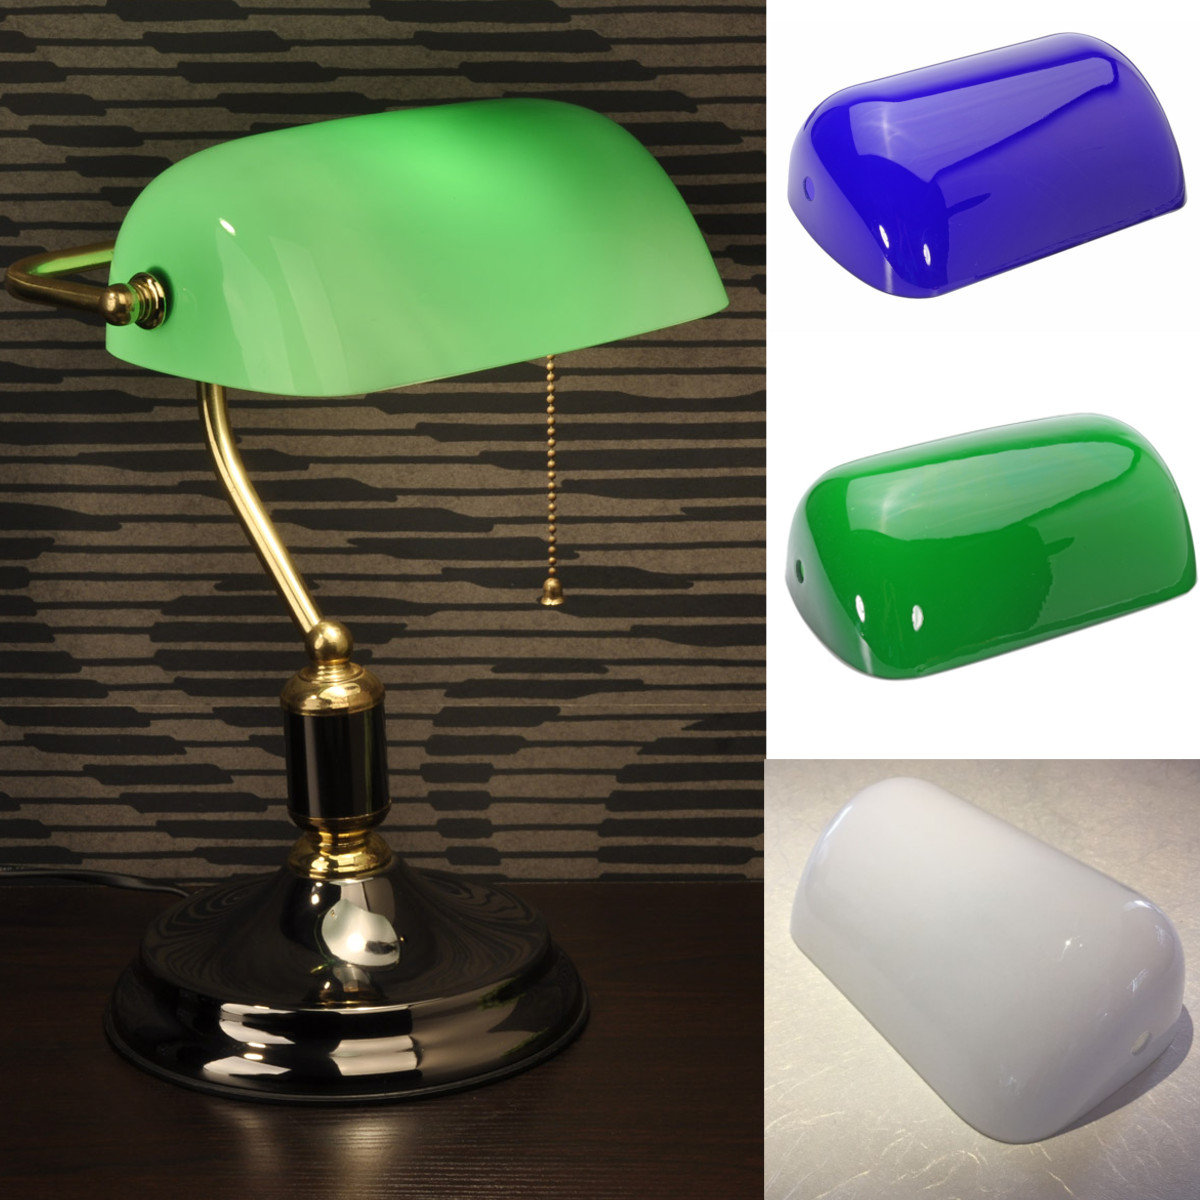 Glass banker lamp shade cover cased replacement lampshade 9 x 5 14 glass banker lamp shade cover cased replacement lampshade 9 aloadofball